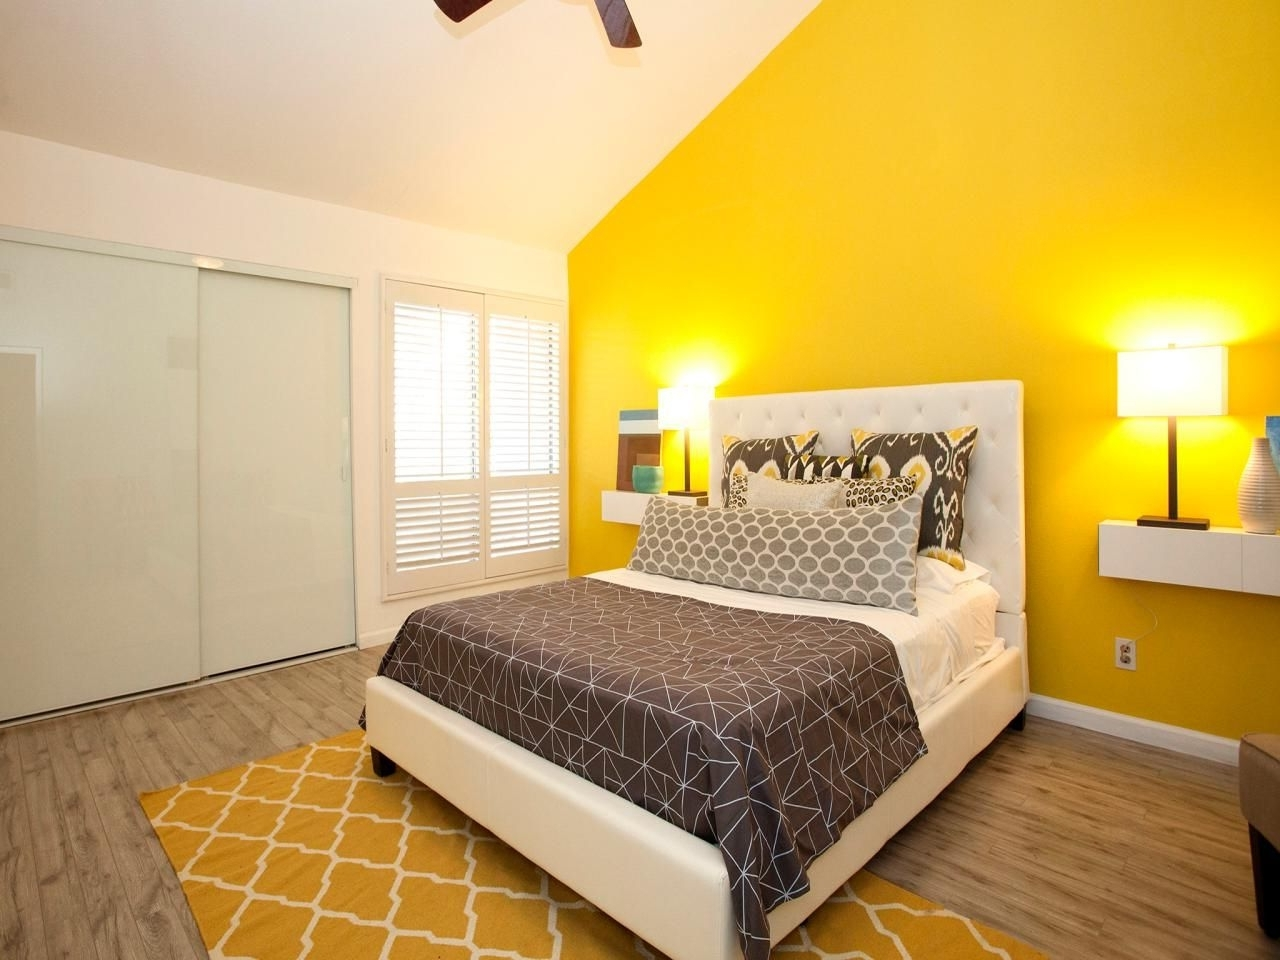 Fashionable 14 Living Room And Bedroom Makeovers From House Hunters Renovation Intended For Wall Accents For Yellow Room (View 5 of 15)